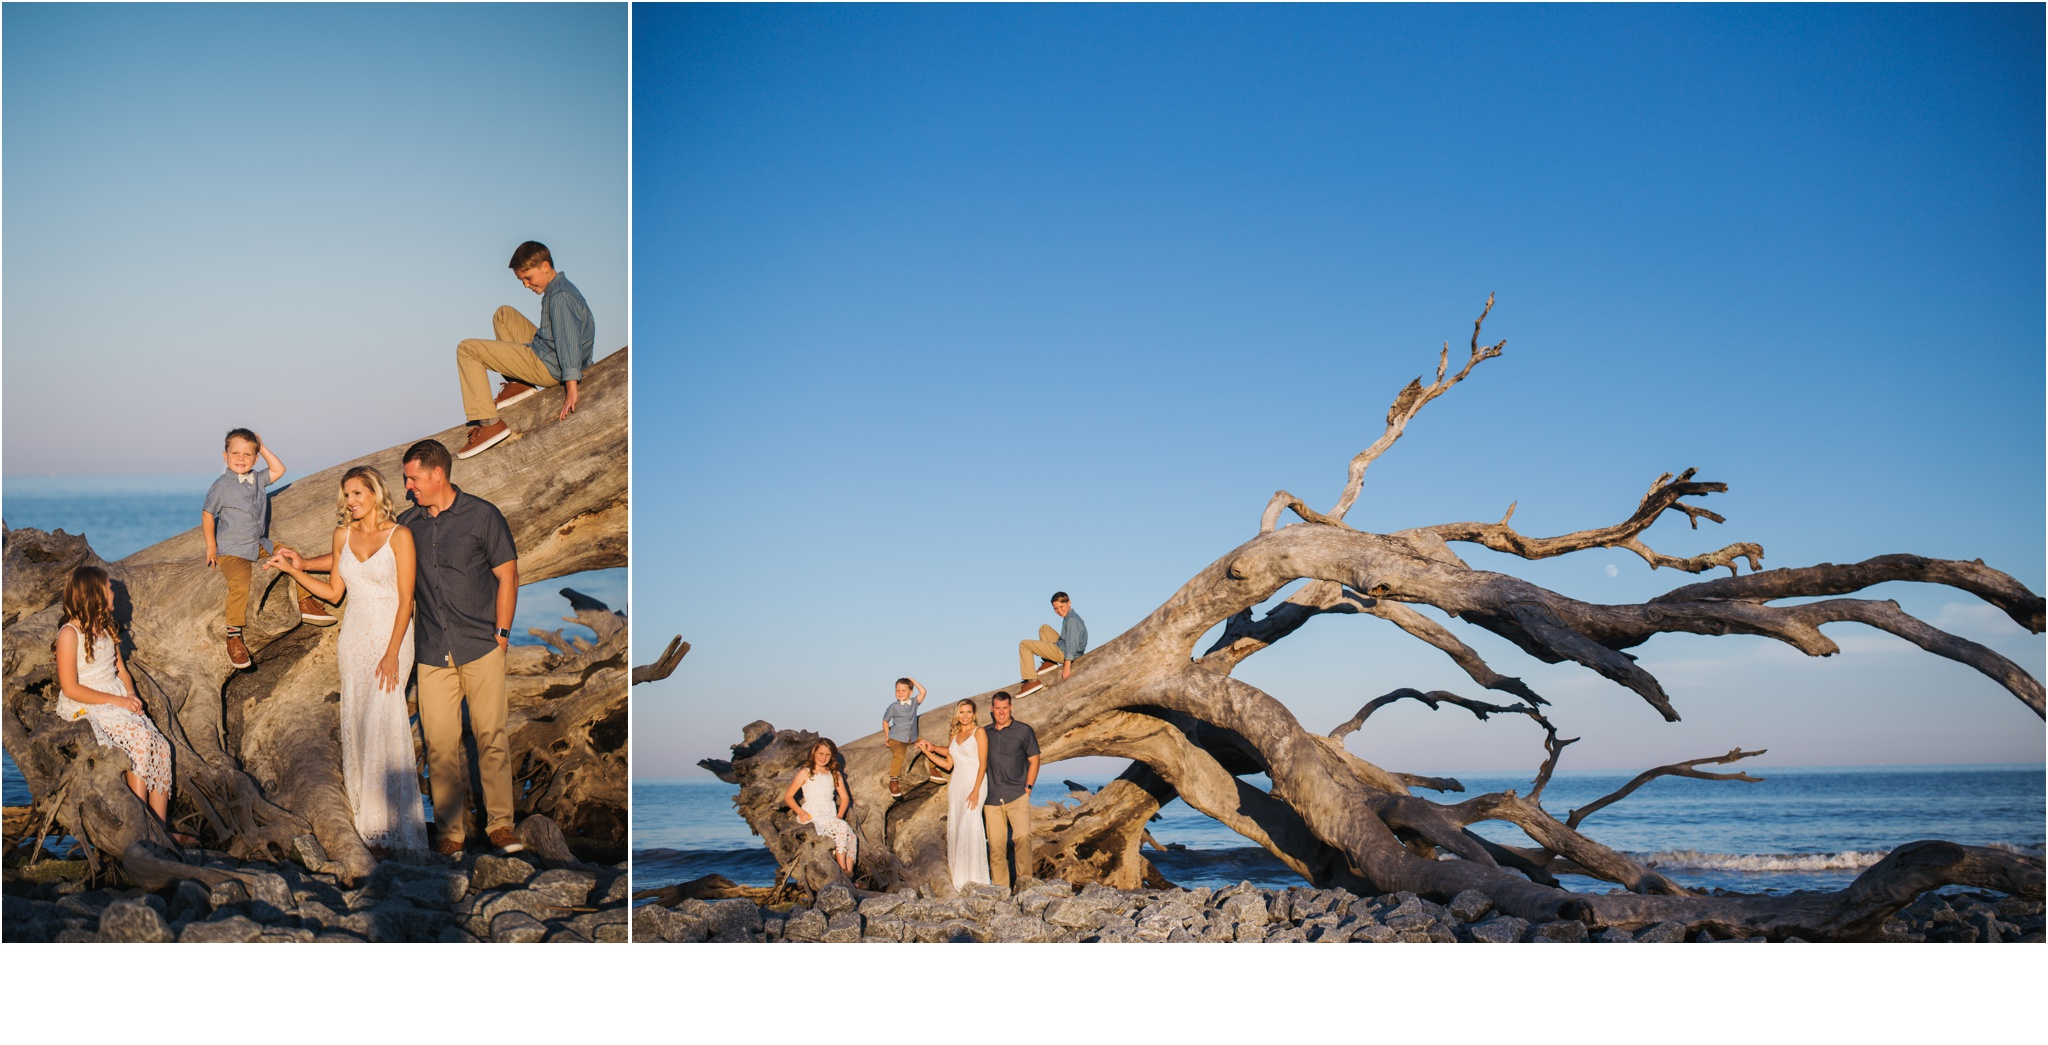 Rainey_Gregg_Photography_St._Simons_Island_Georgia_California_Wedding_Portrait_Photography_1591.jpg